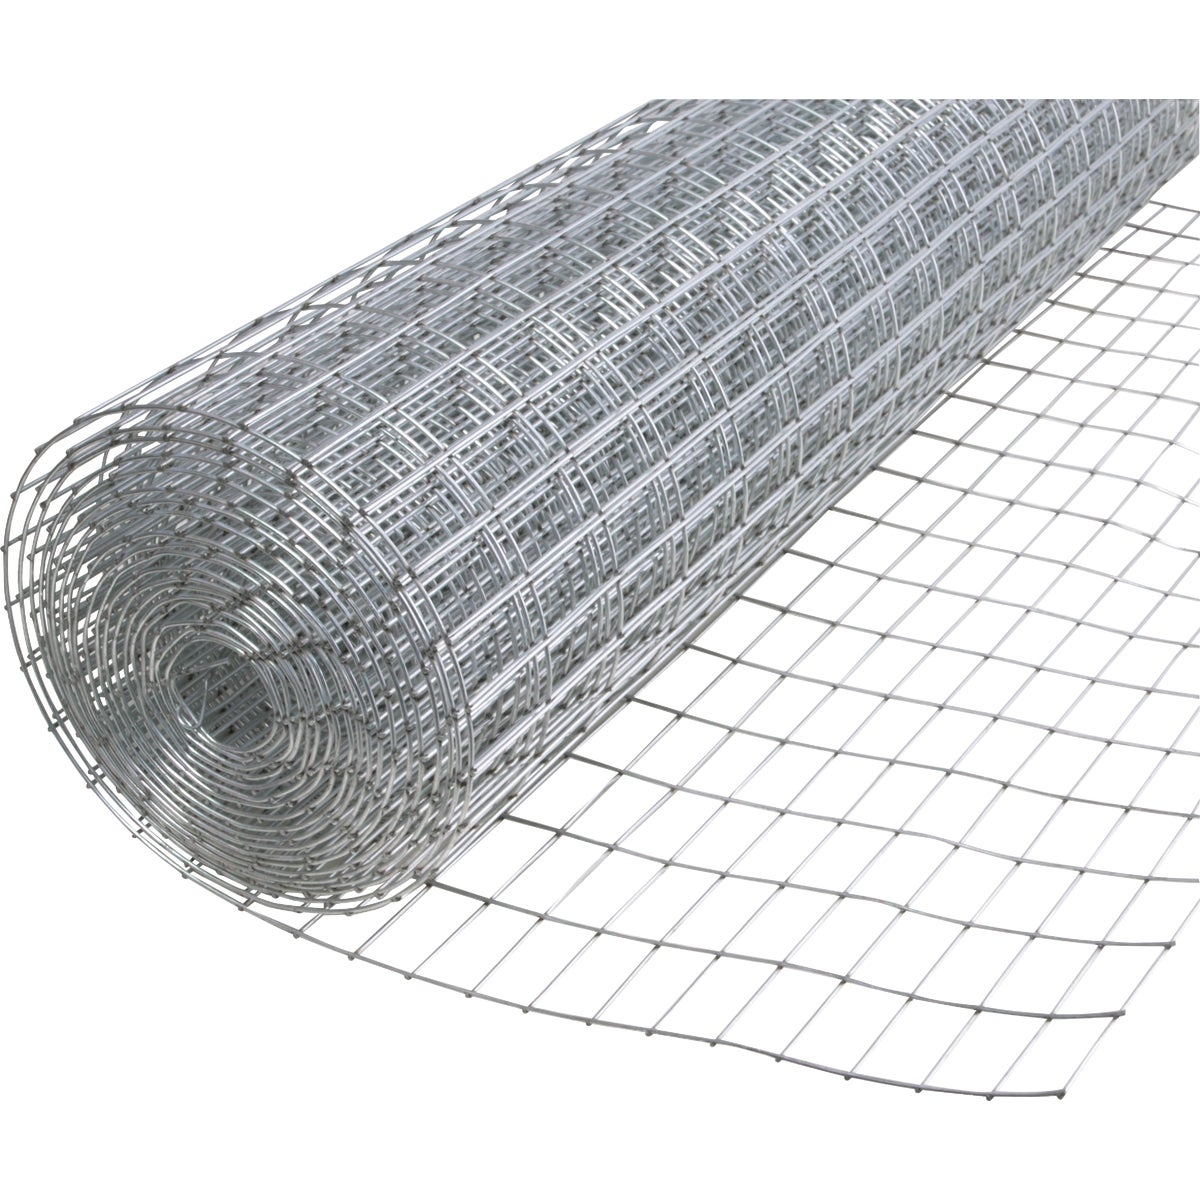 "36""X25' 1X2 14G FENCE - 700718 by Do it Best"